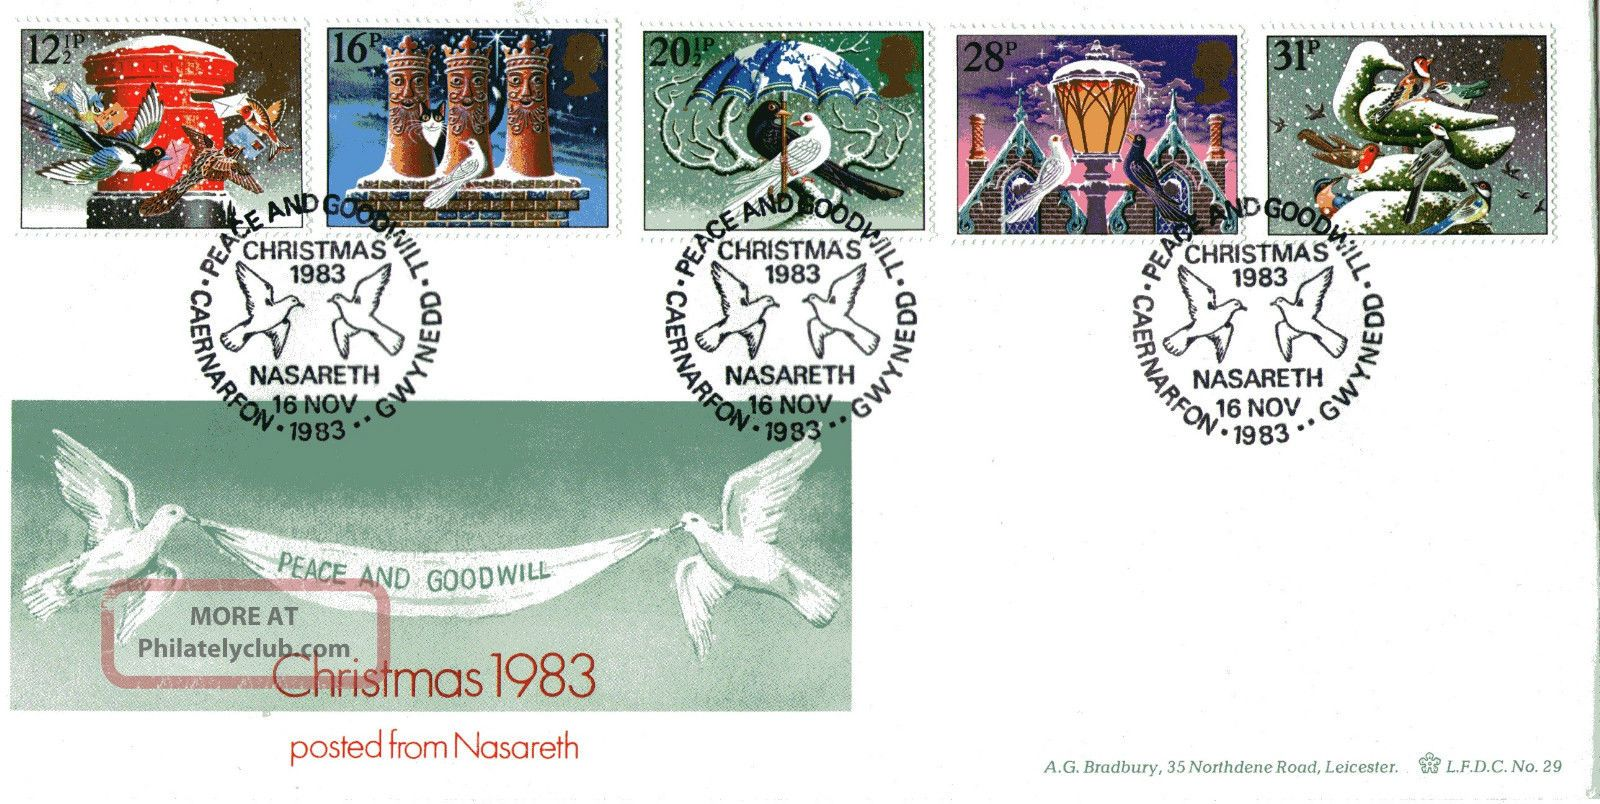 16 November 1983 Christmas Scarce Bradbury Le First Day Cover Nasareth Shs Topical Stamps photo